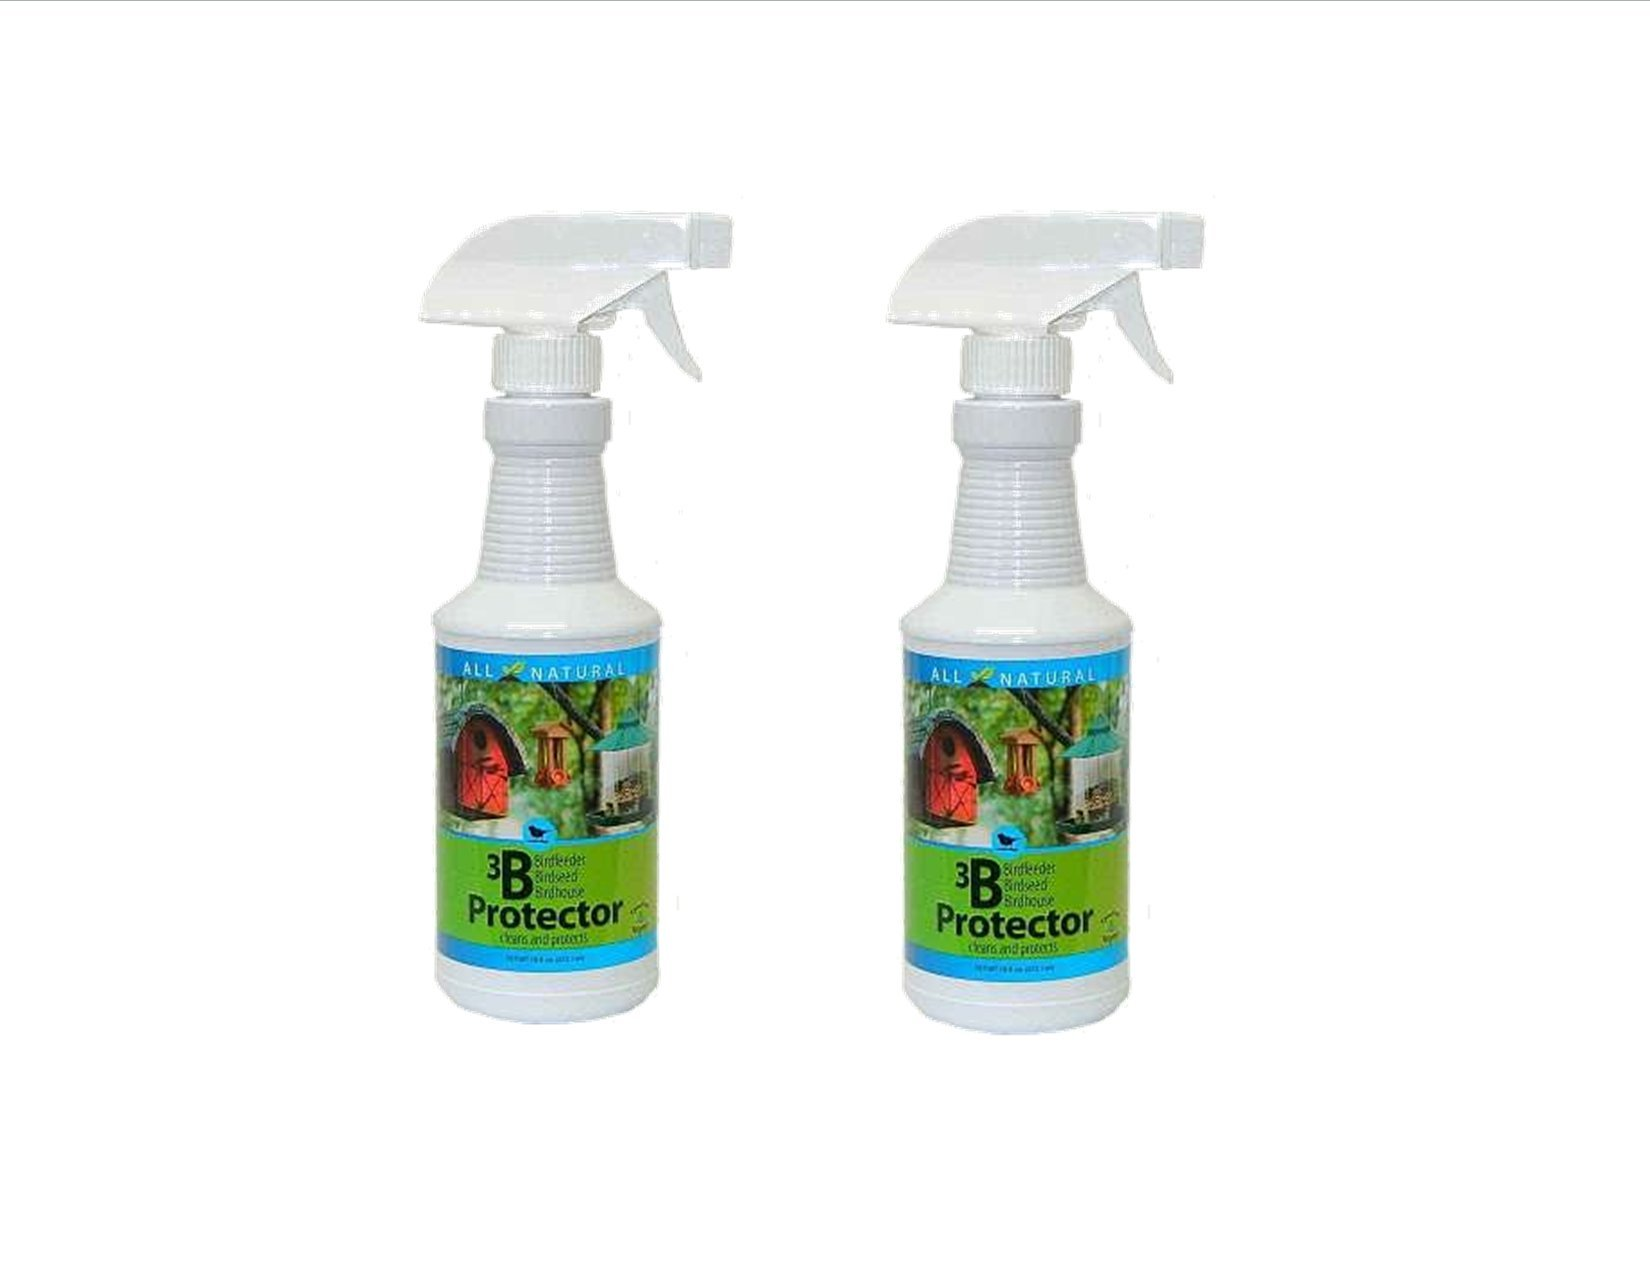 Care Free Enzymes 2-Pack 3B Protector Spray Bottle 94721D 16 oz.